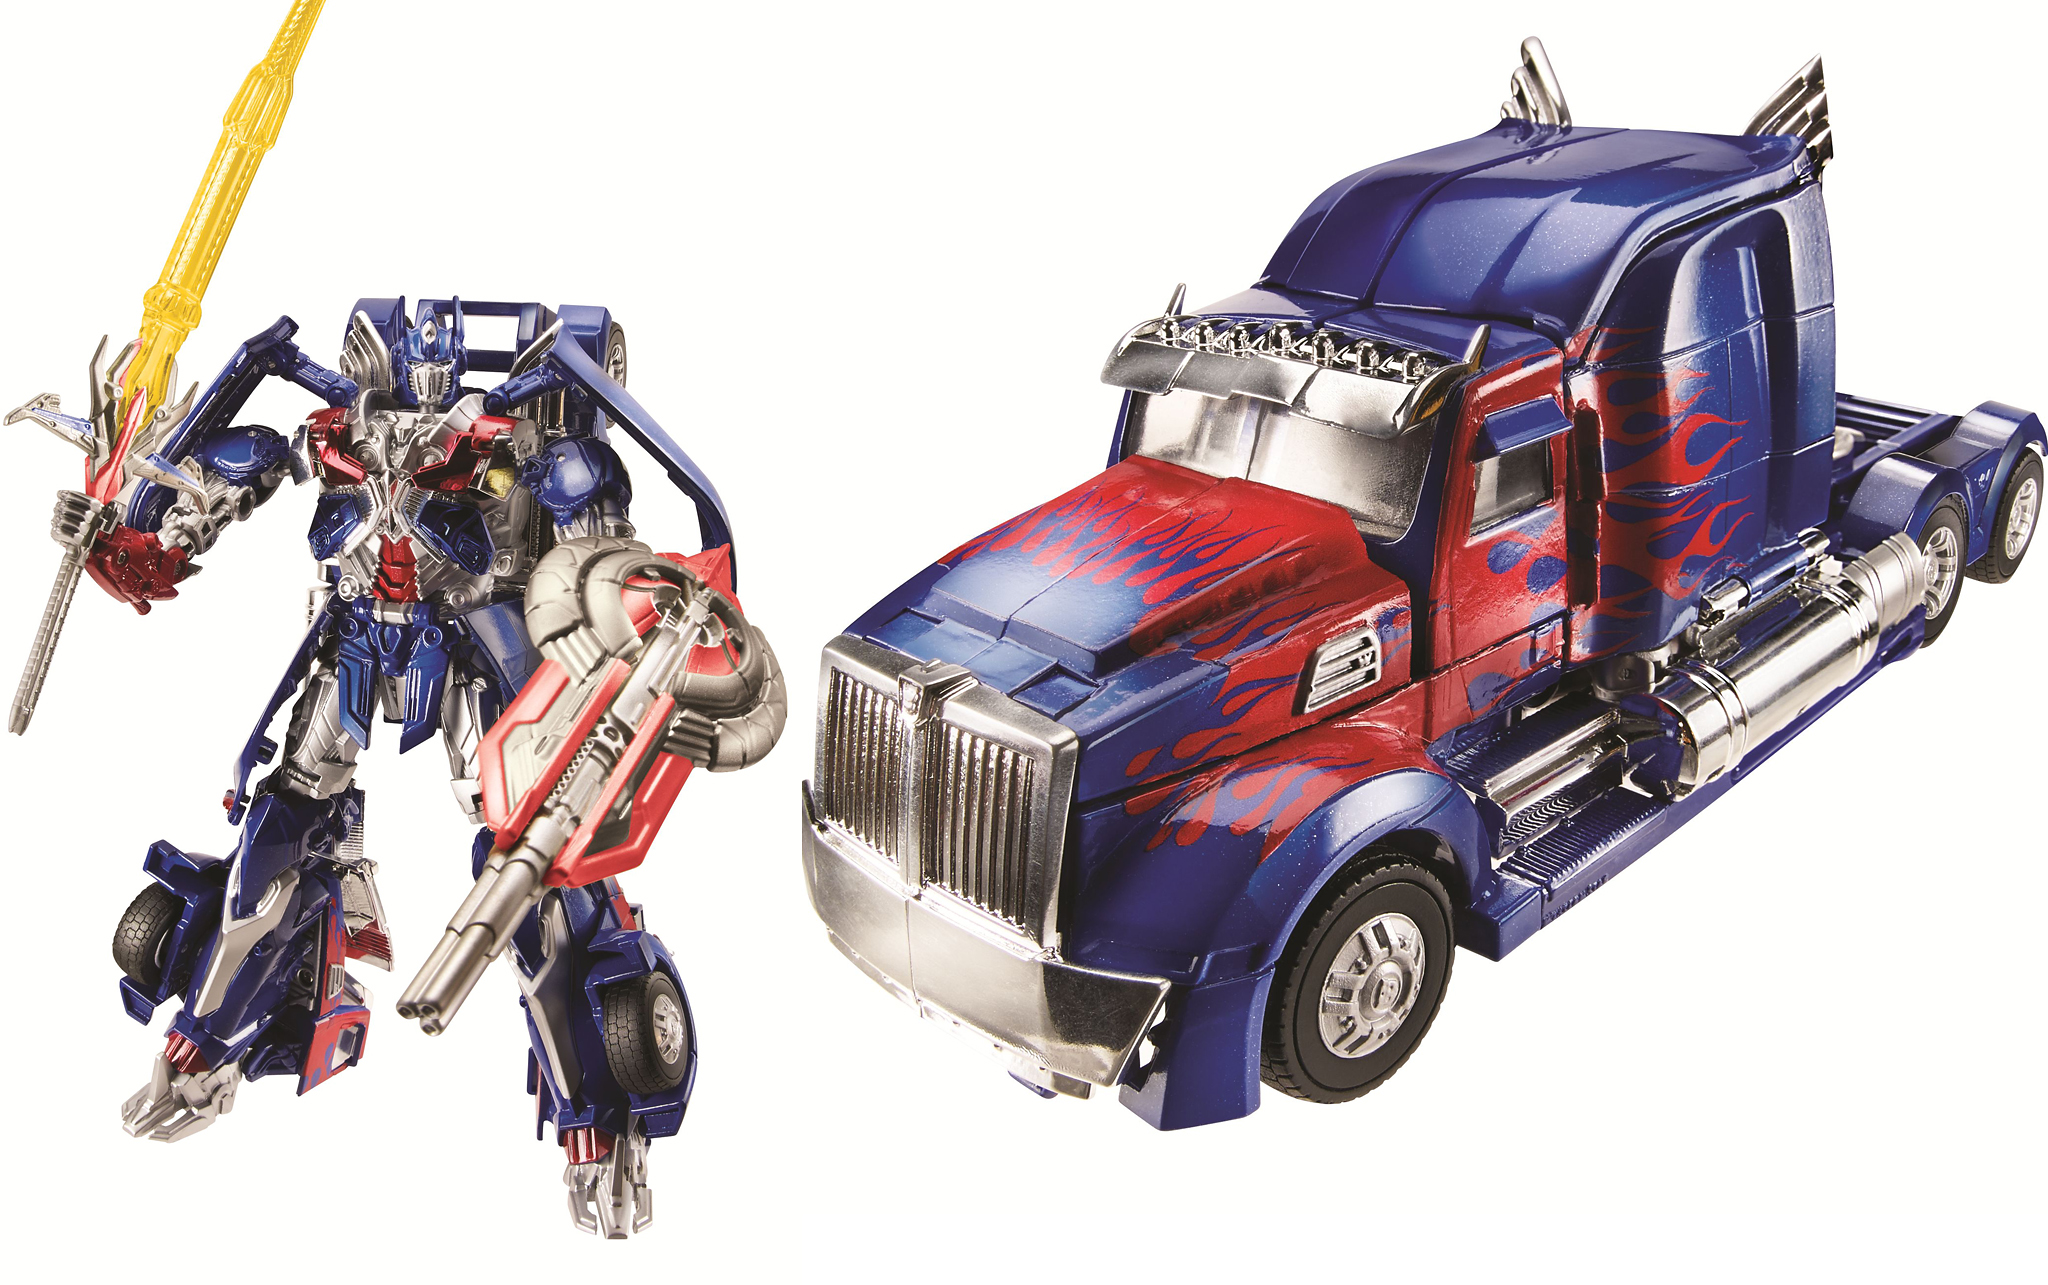 The new Optimus Prime toy (Photo: Hasbro)